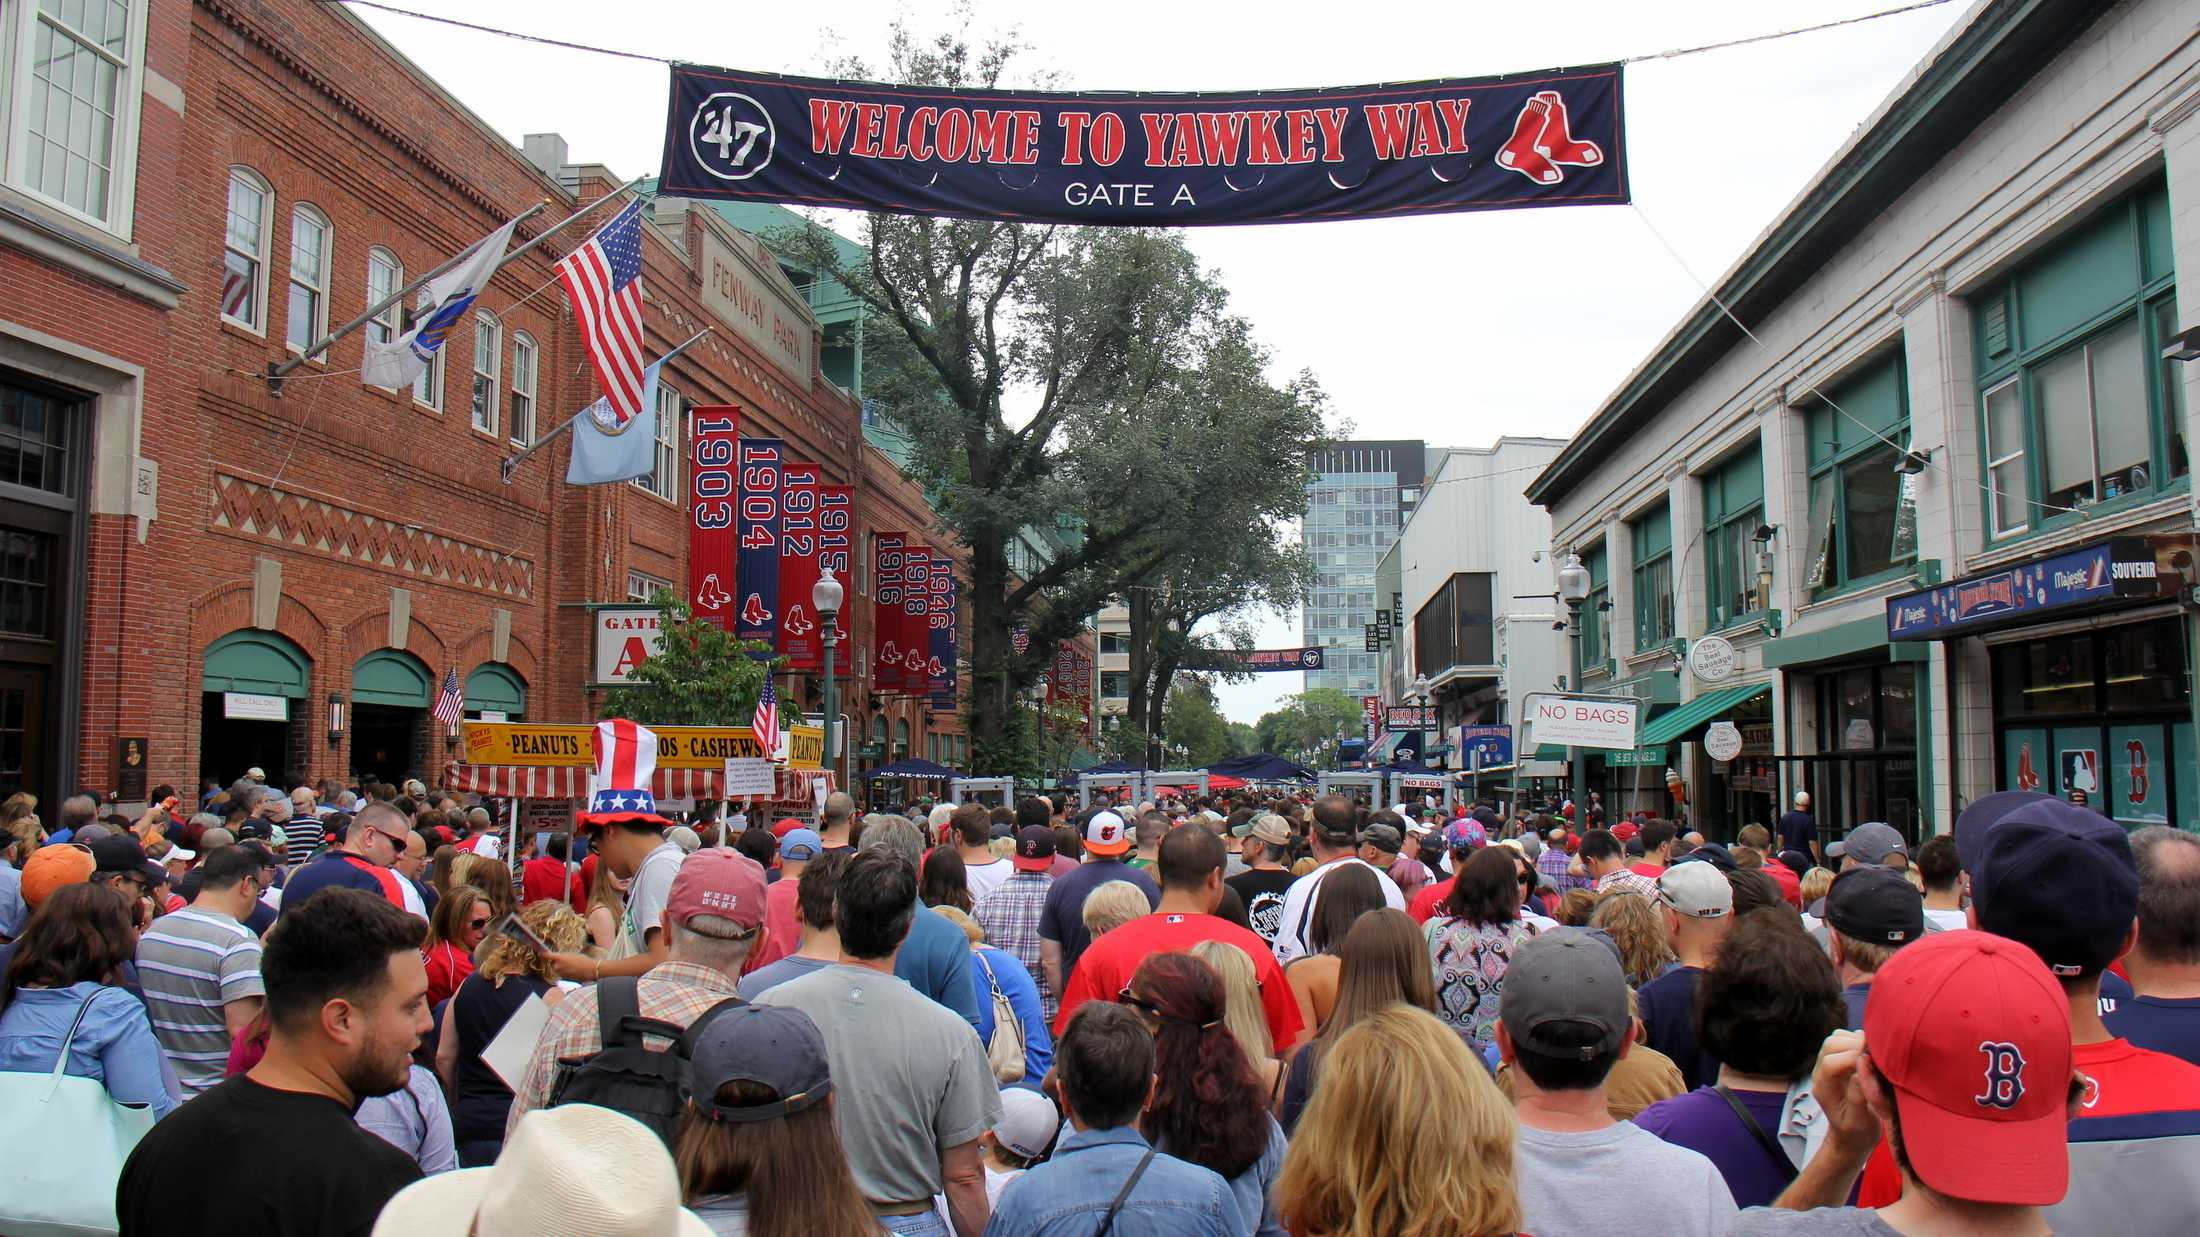 Fans line up along Yawkey Way to pass through security and enter Fenway Park.